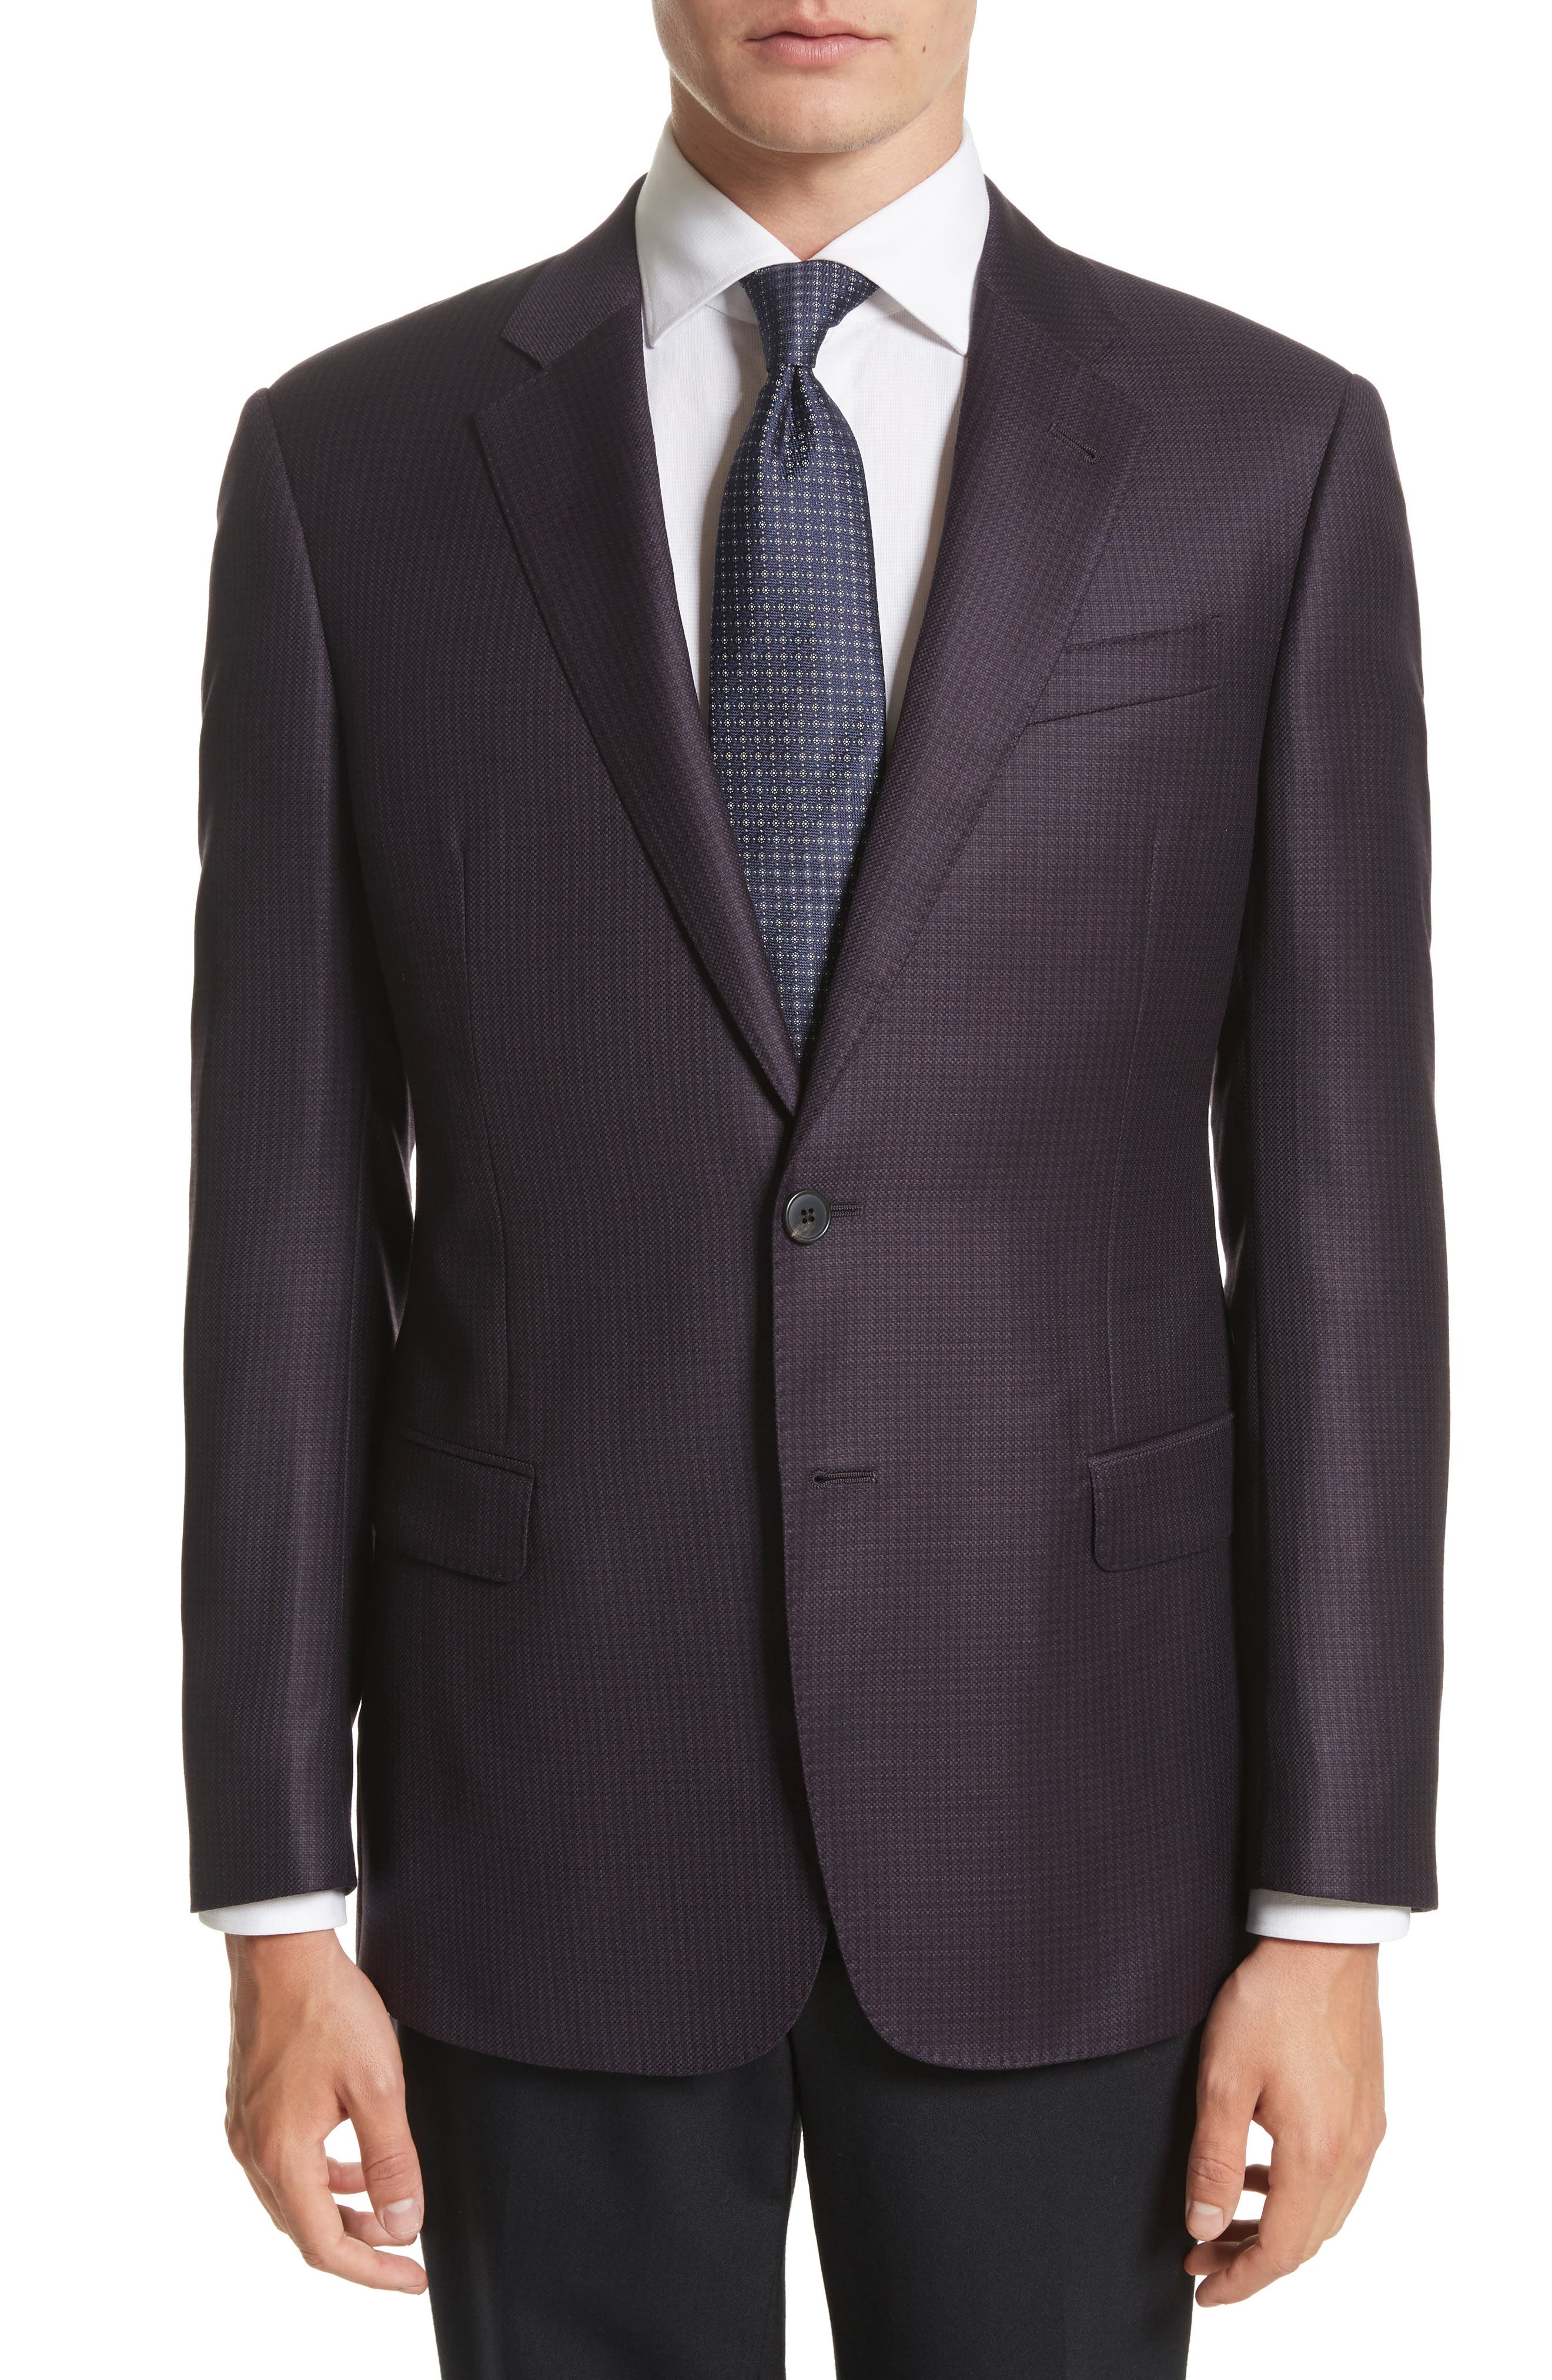 Main Image - Armani Collezioni G-Line Trim Fit Houndstooth Wool Sport Coat